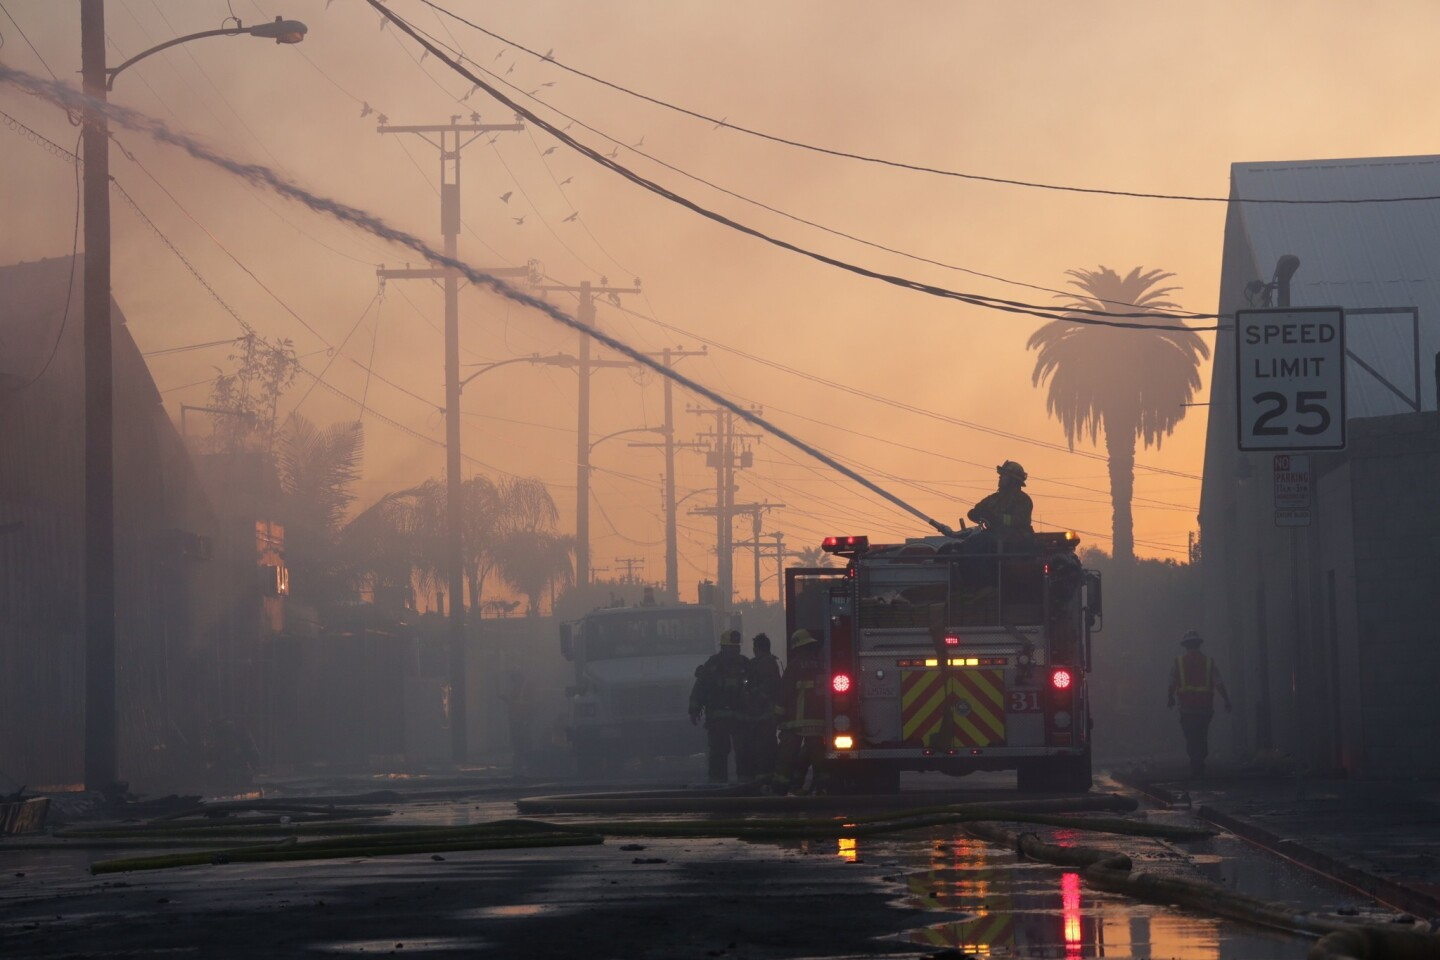 An investigation is underway into the cause of a massive blaze that destroyed businesses in an industrial part of South L.A. early Wednesday.